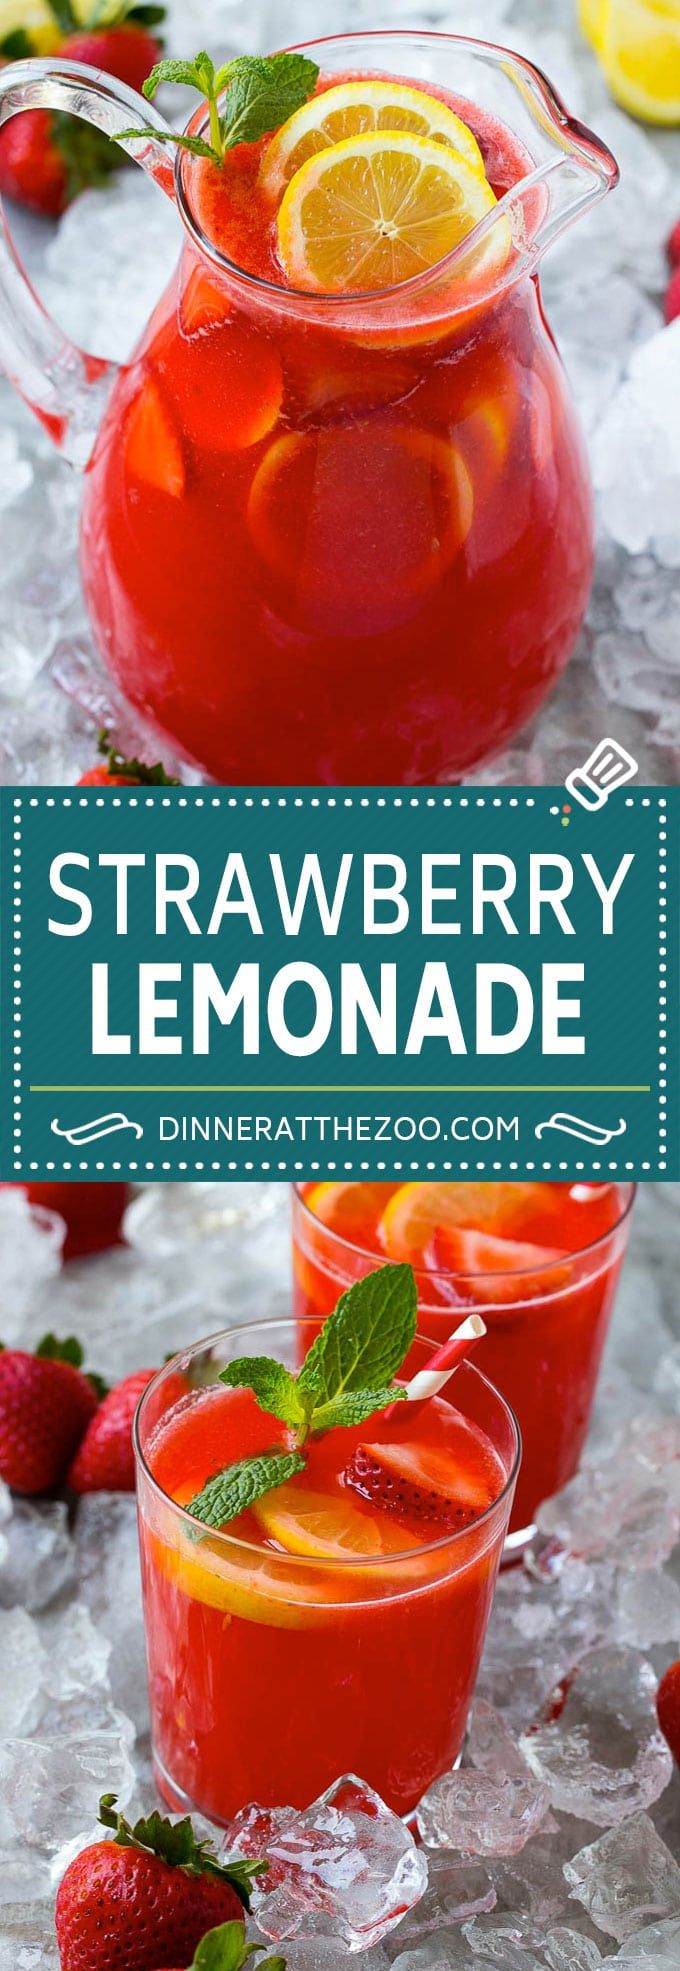 Strawberry Lemonade - Dinner at the Zoo